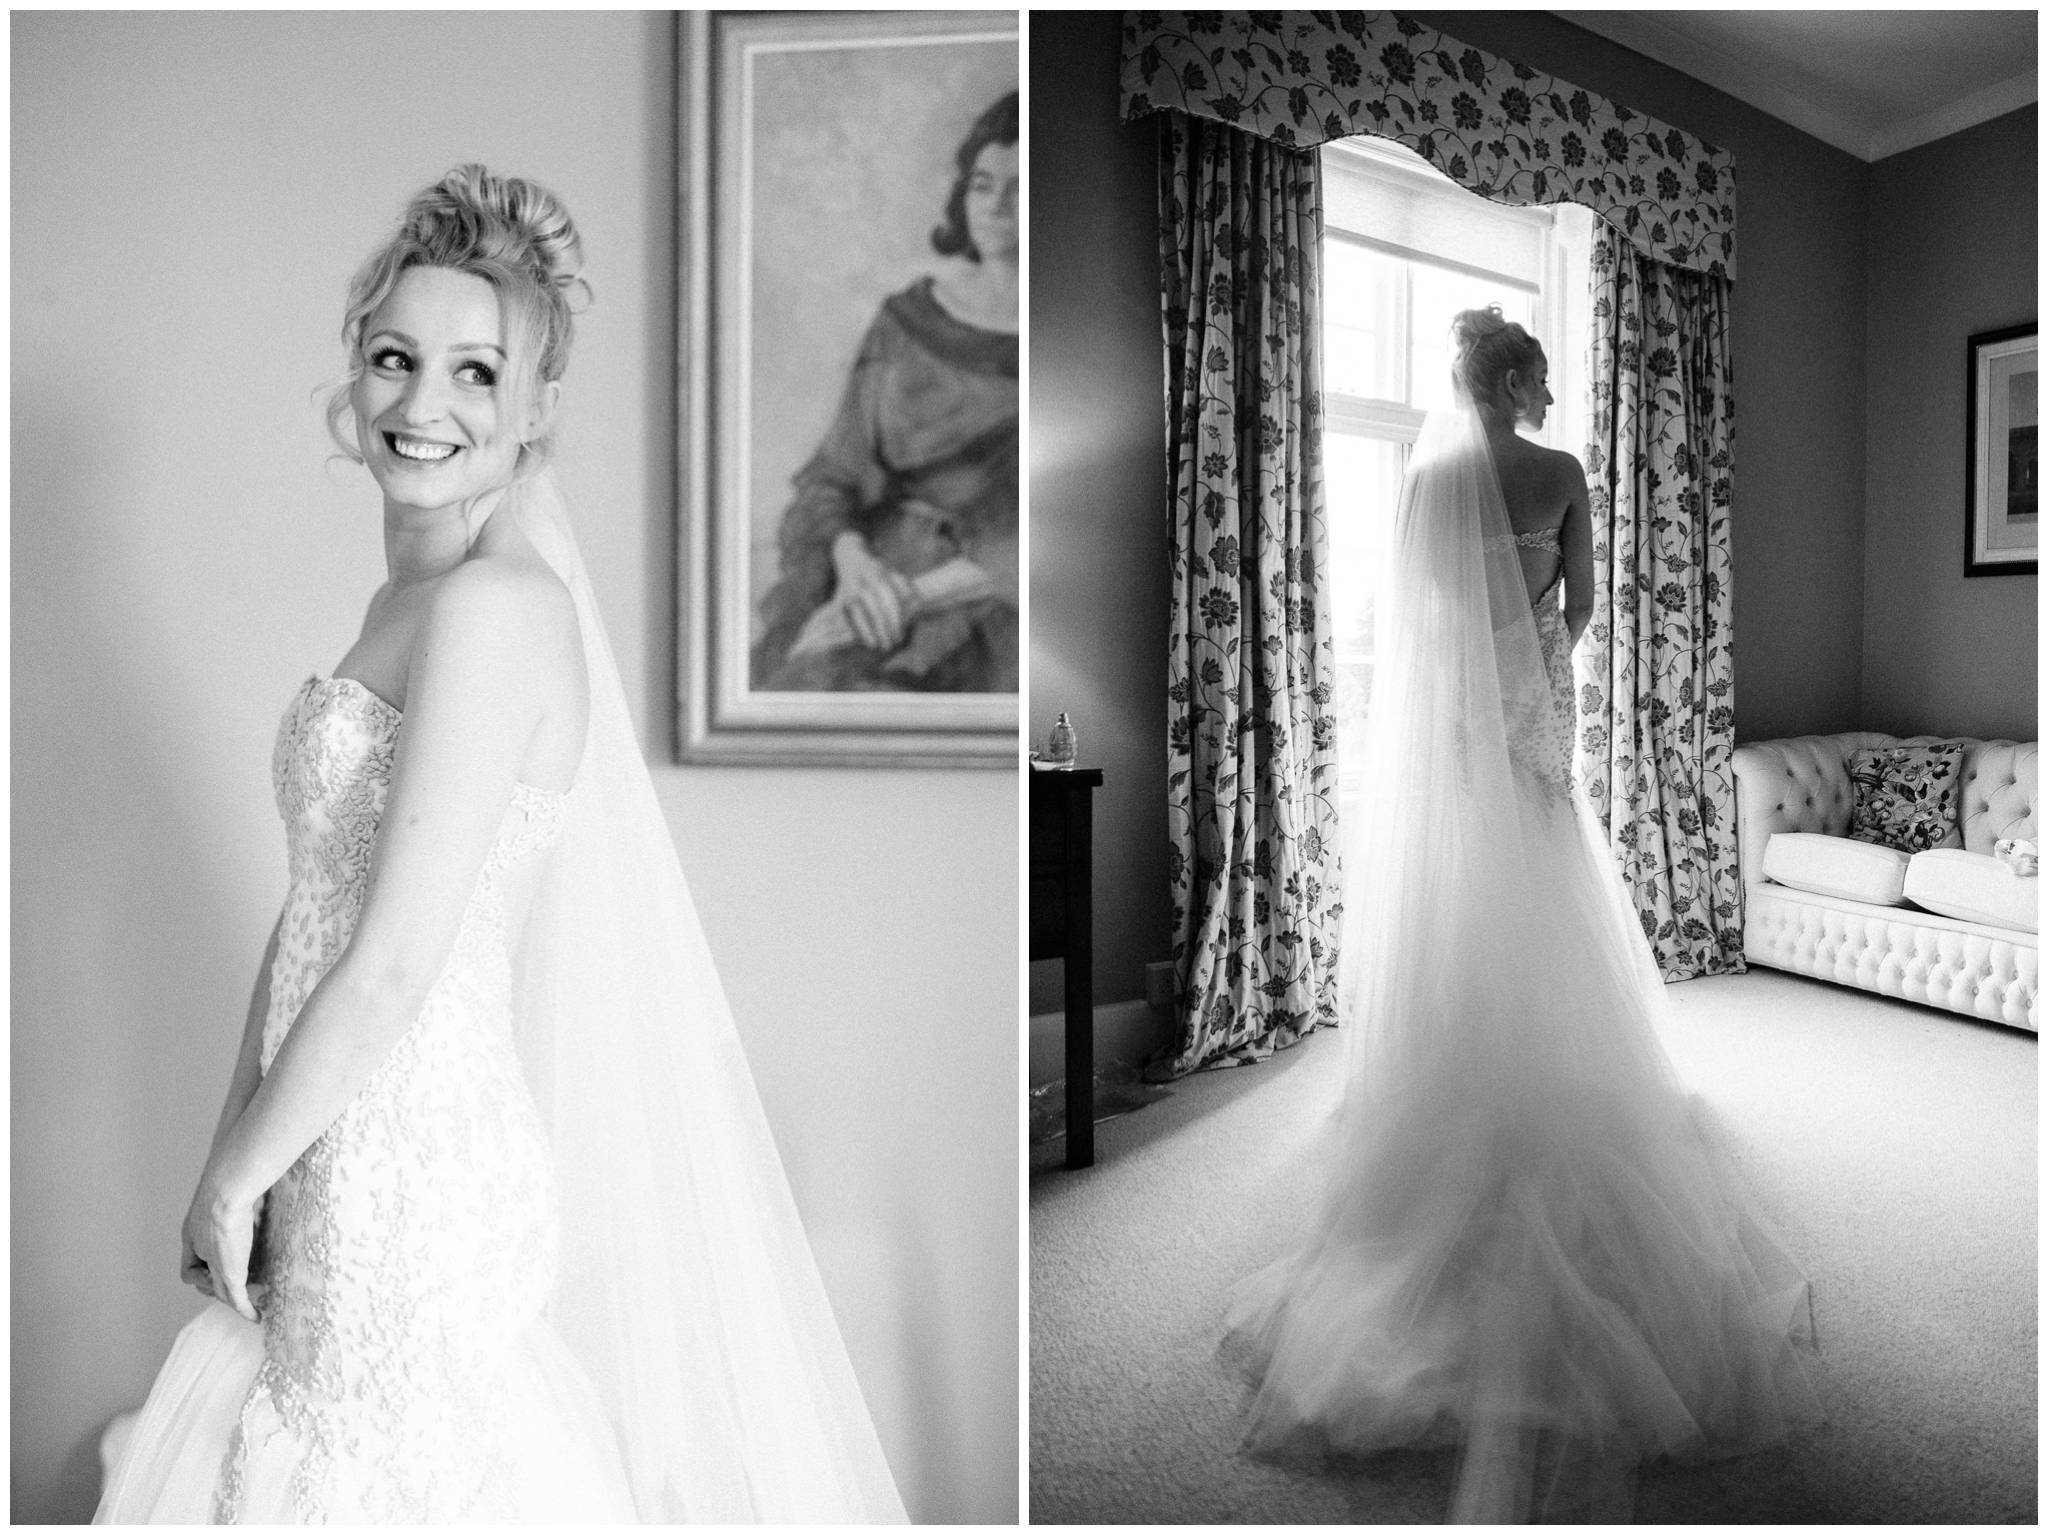 Natural wedding photography Manchester - Clare Robinson Photography_0243.jpg